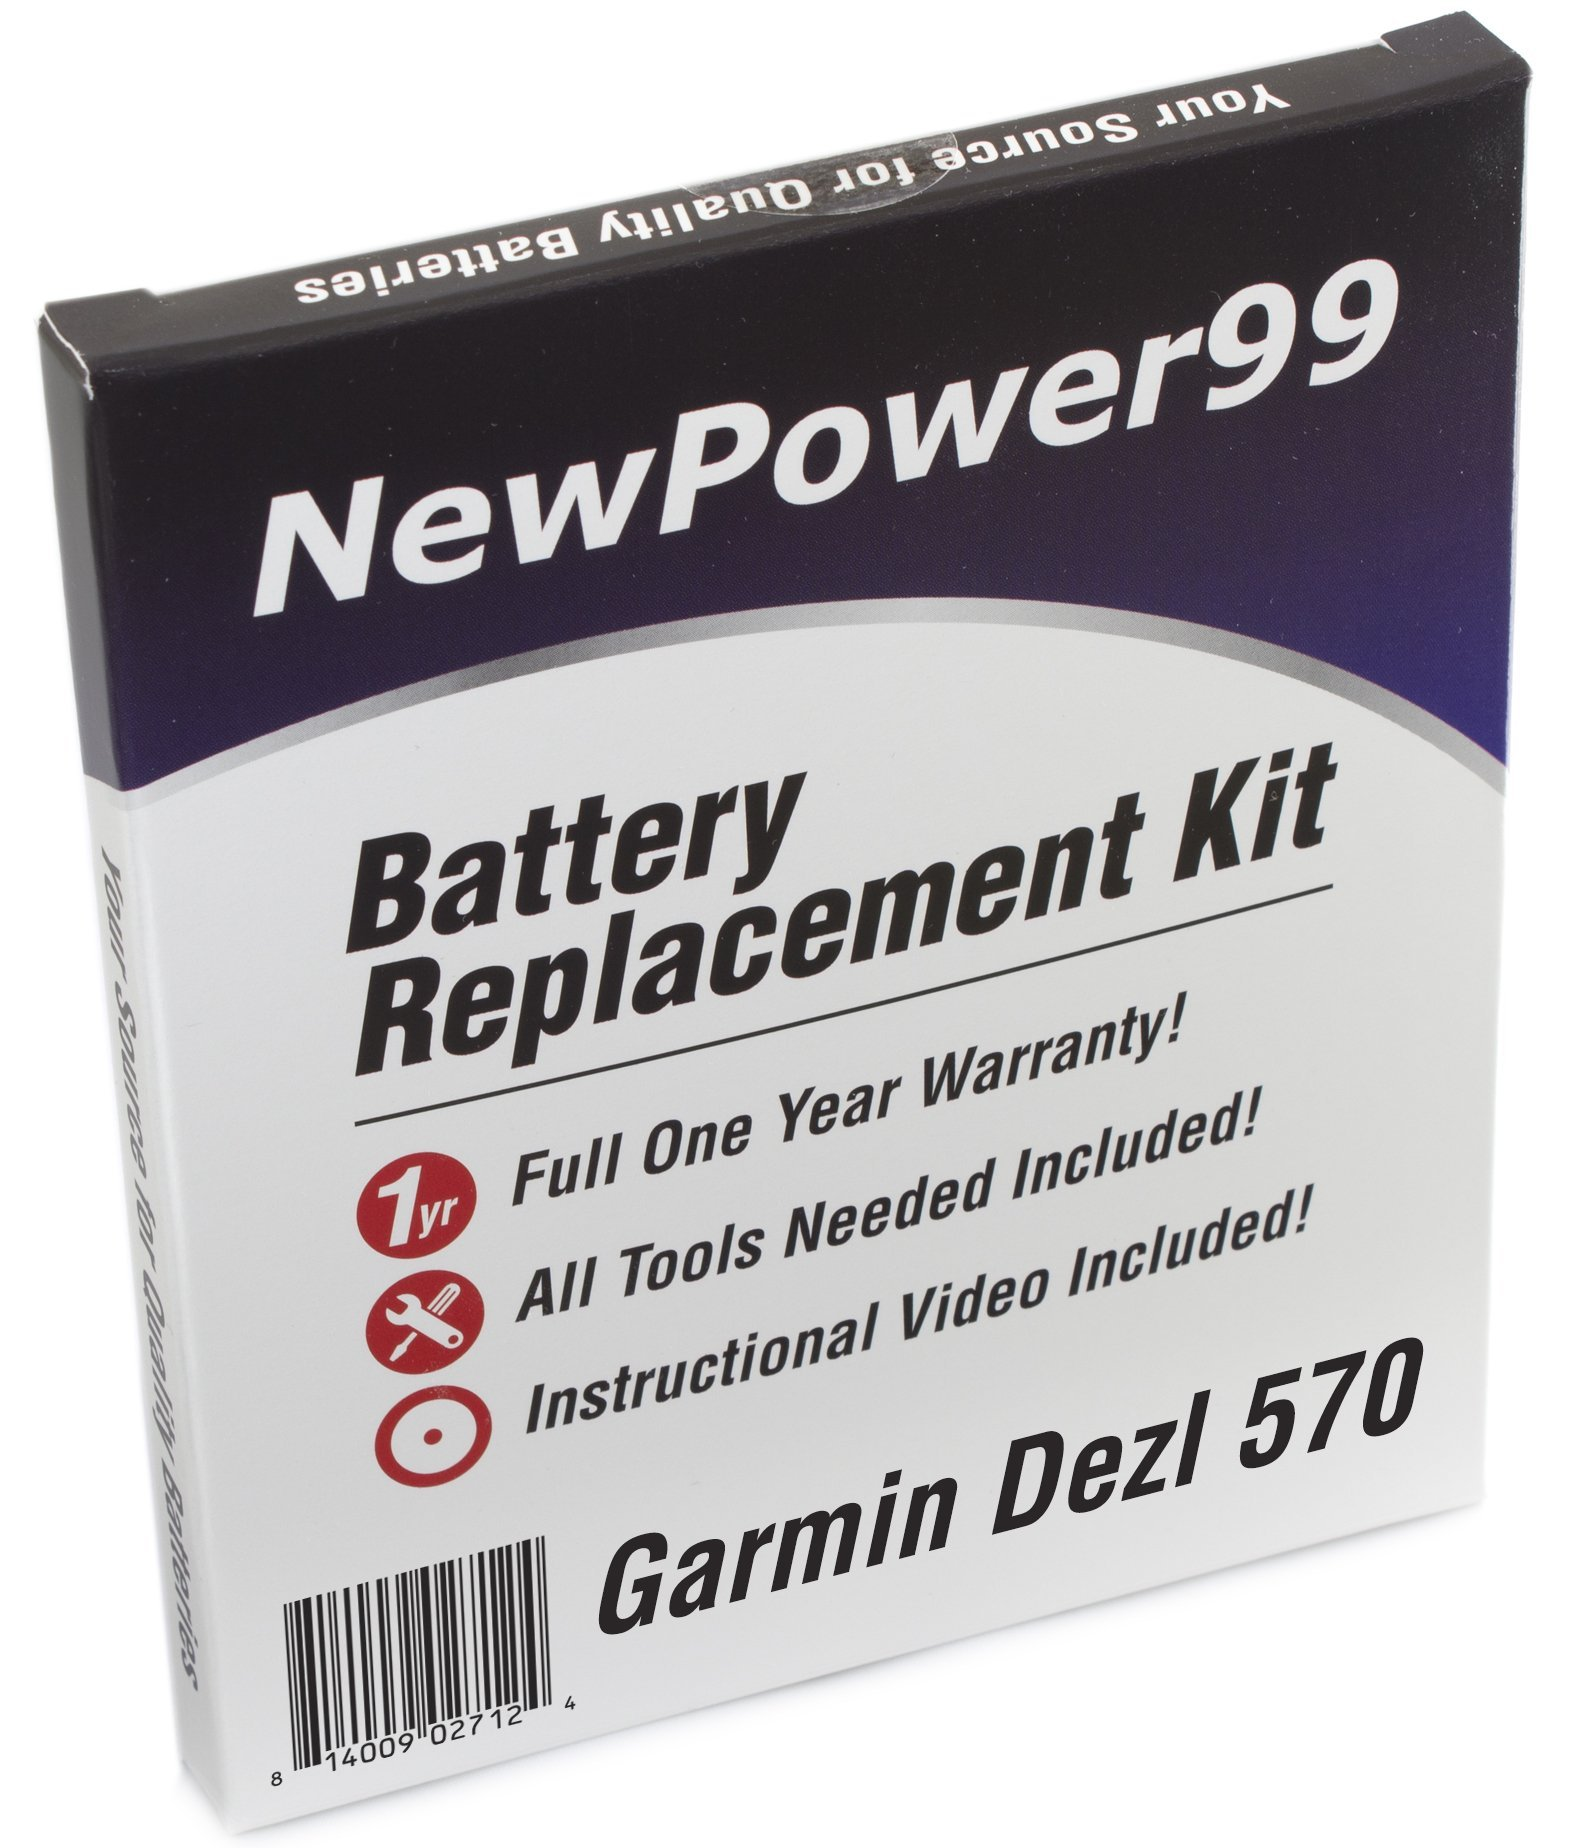 NewPower99 Battery Replacement Kit for Garmin Dezl 570 with Installation Video, Tools, and Extended Life Battery. by NewPower99